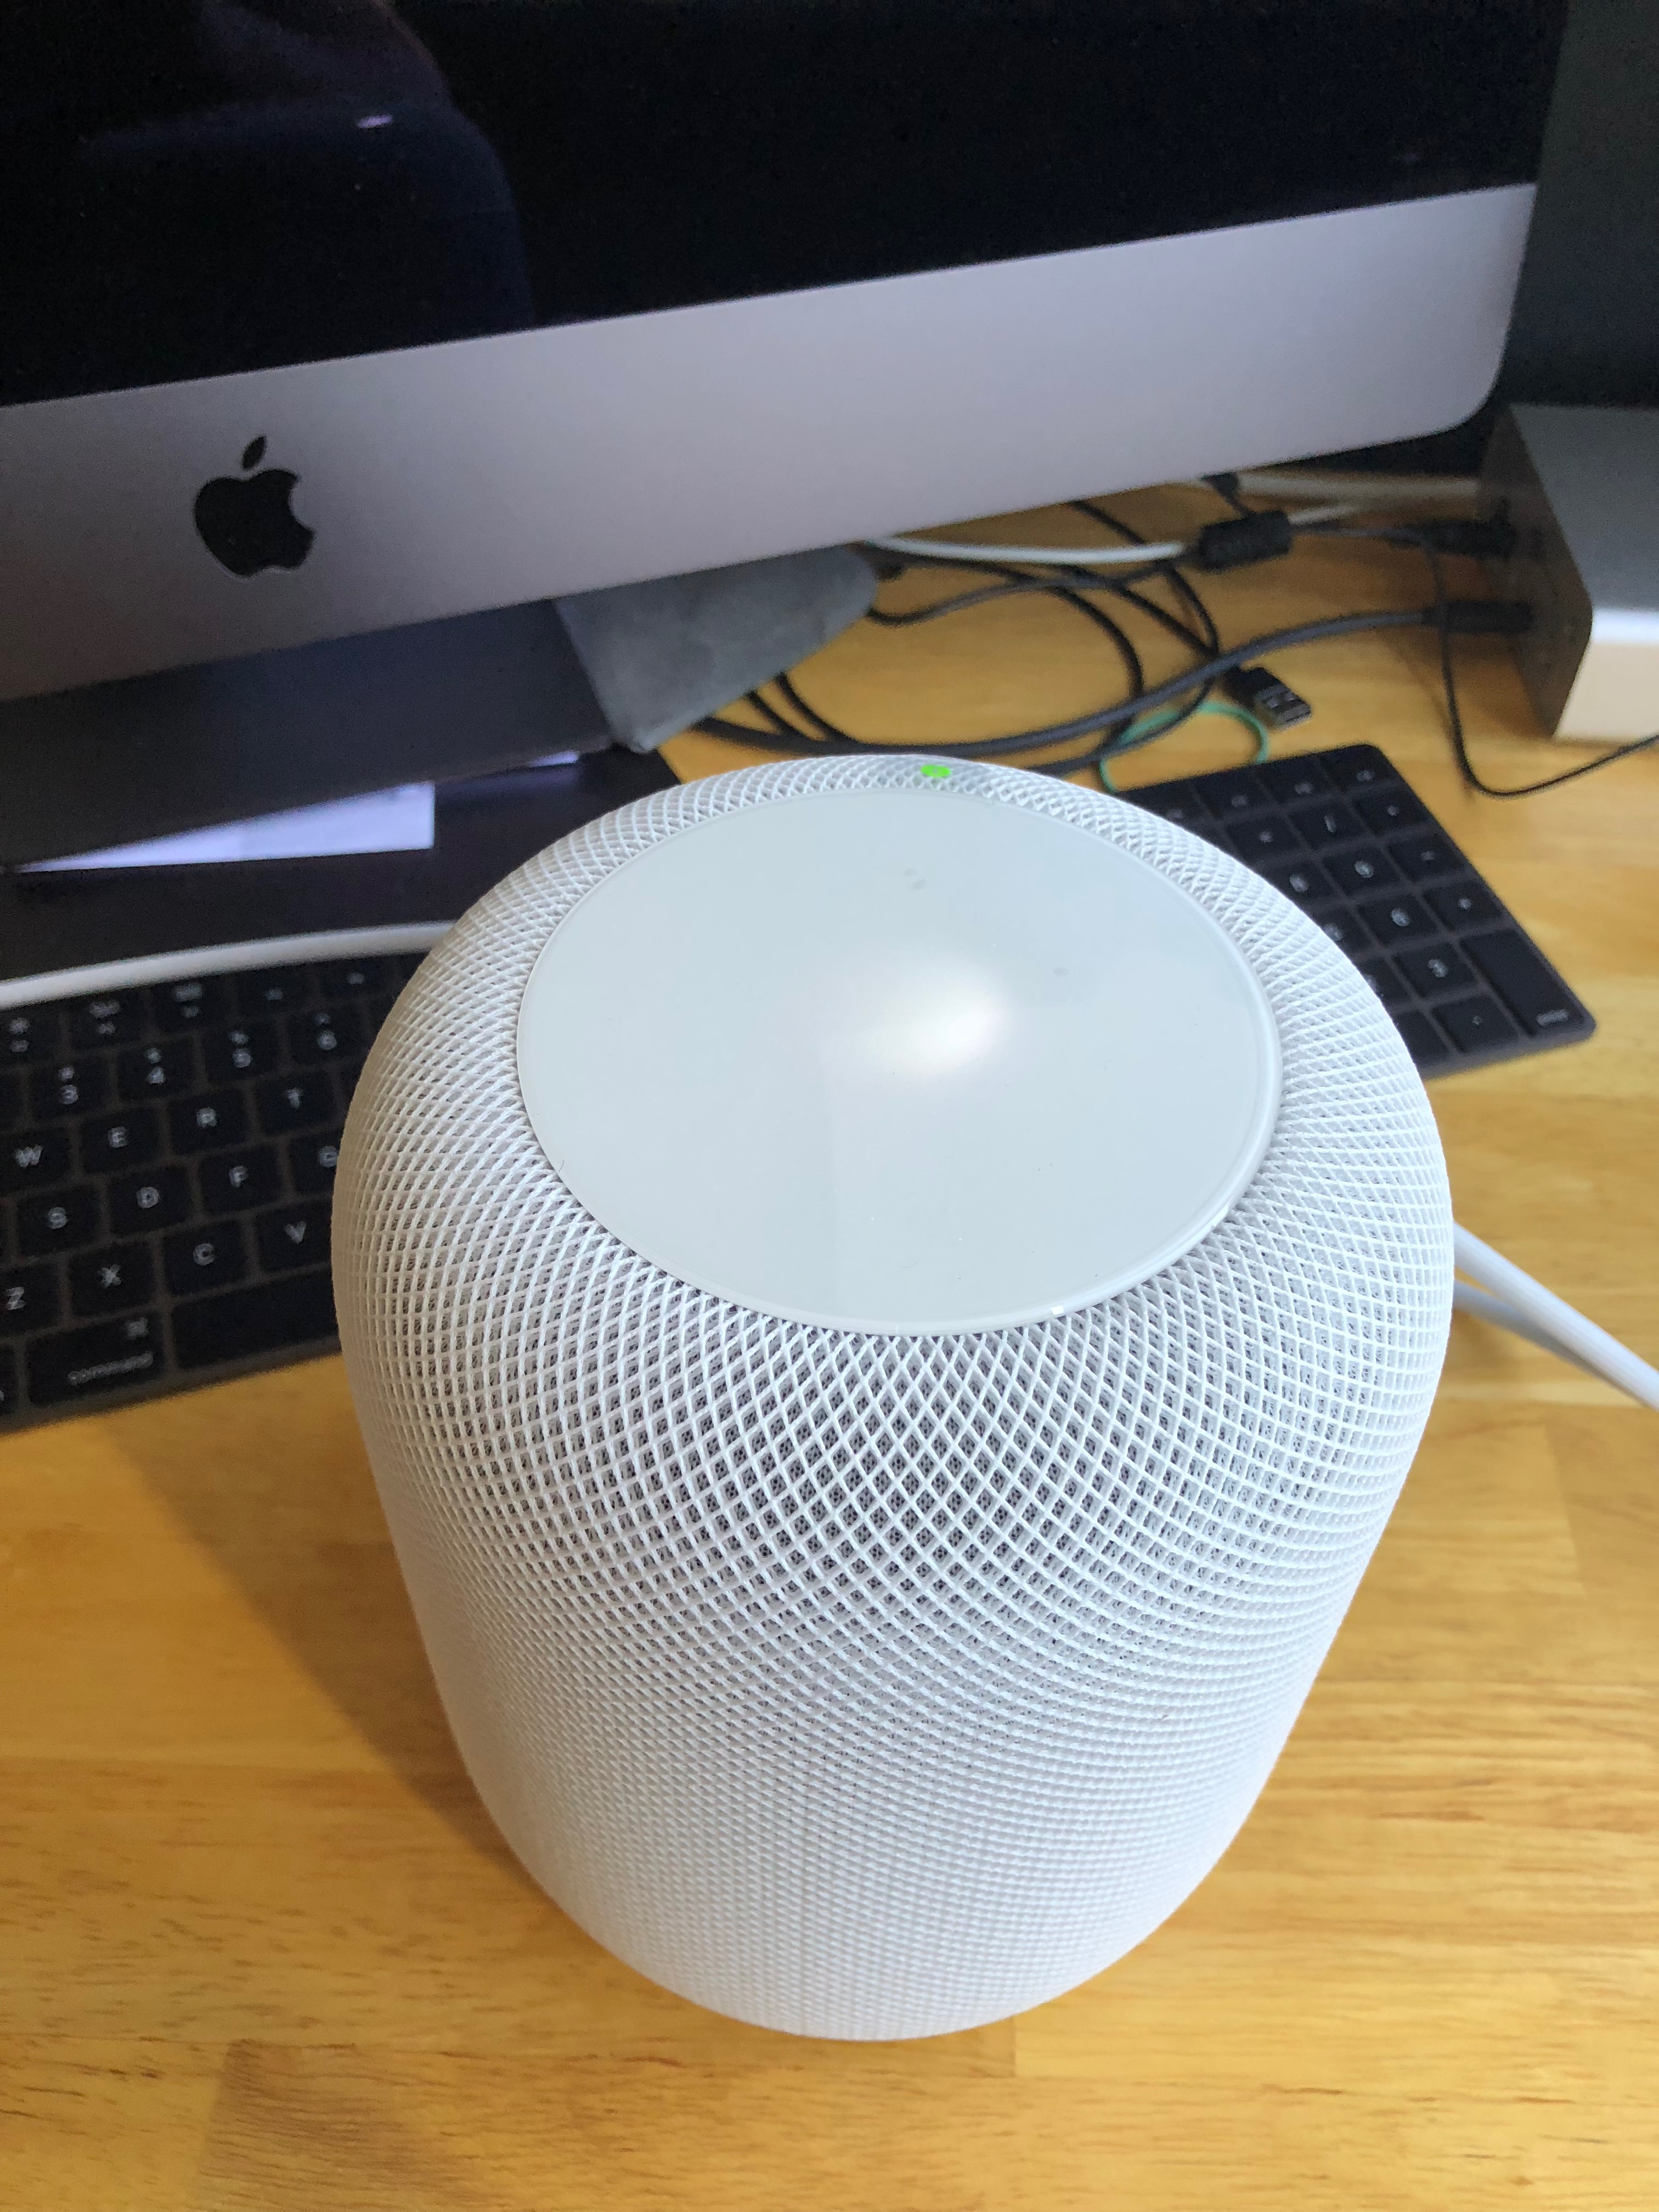 Figure 2. HomePod.